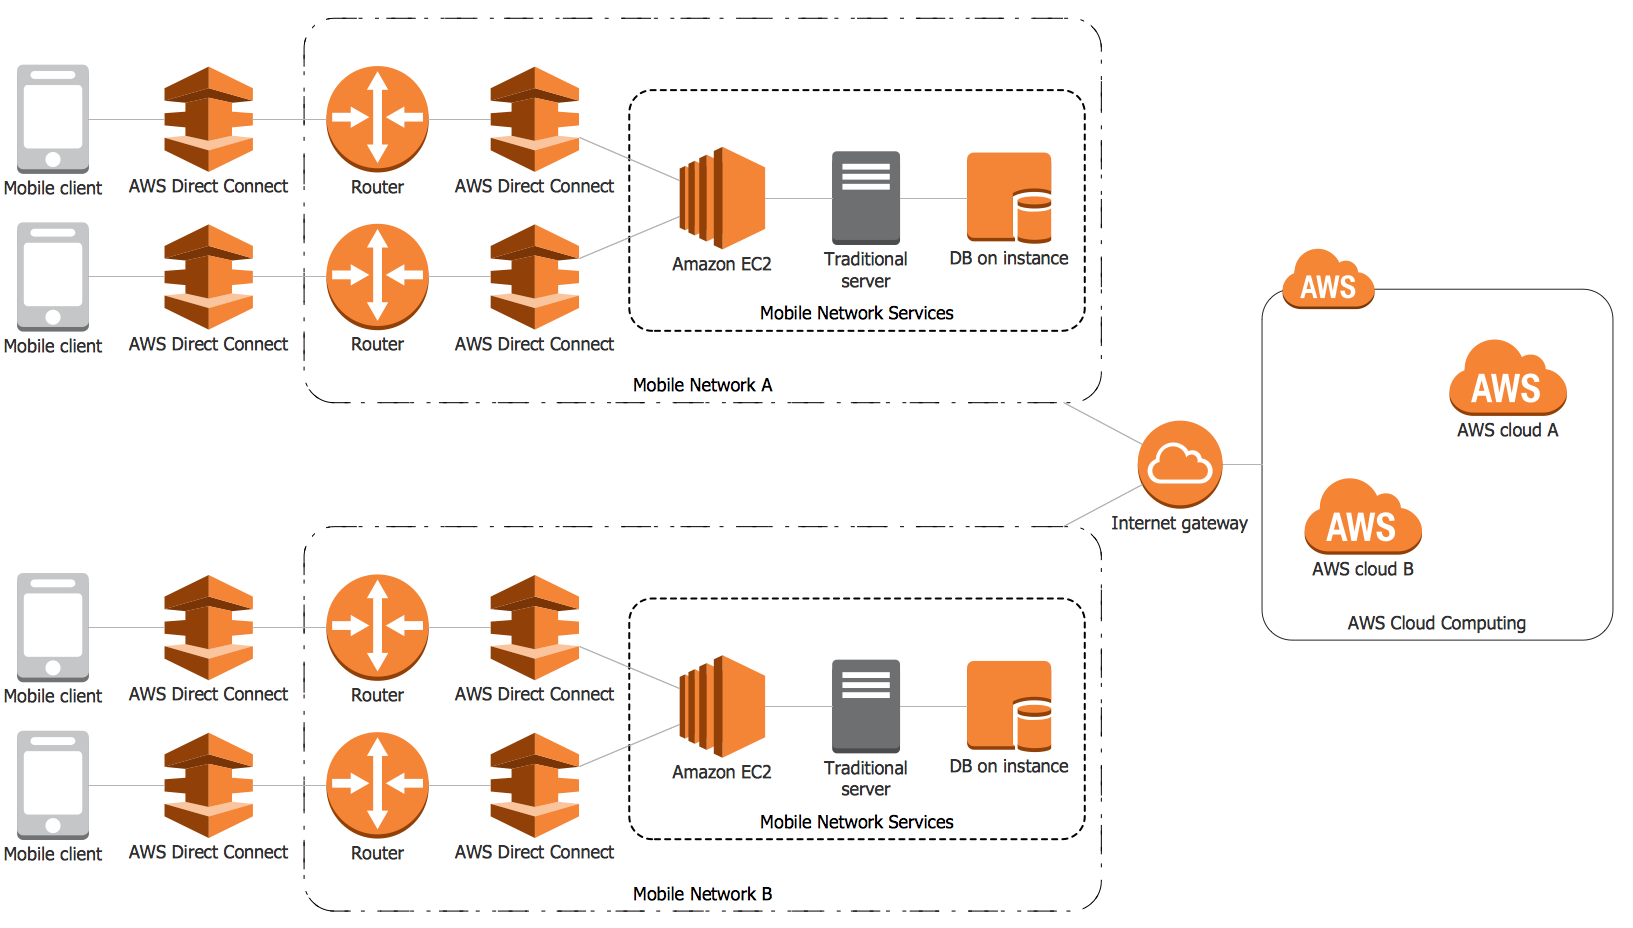 free domain diagram icons aws diagram icons